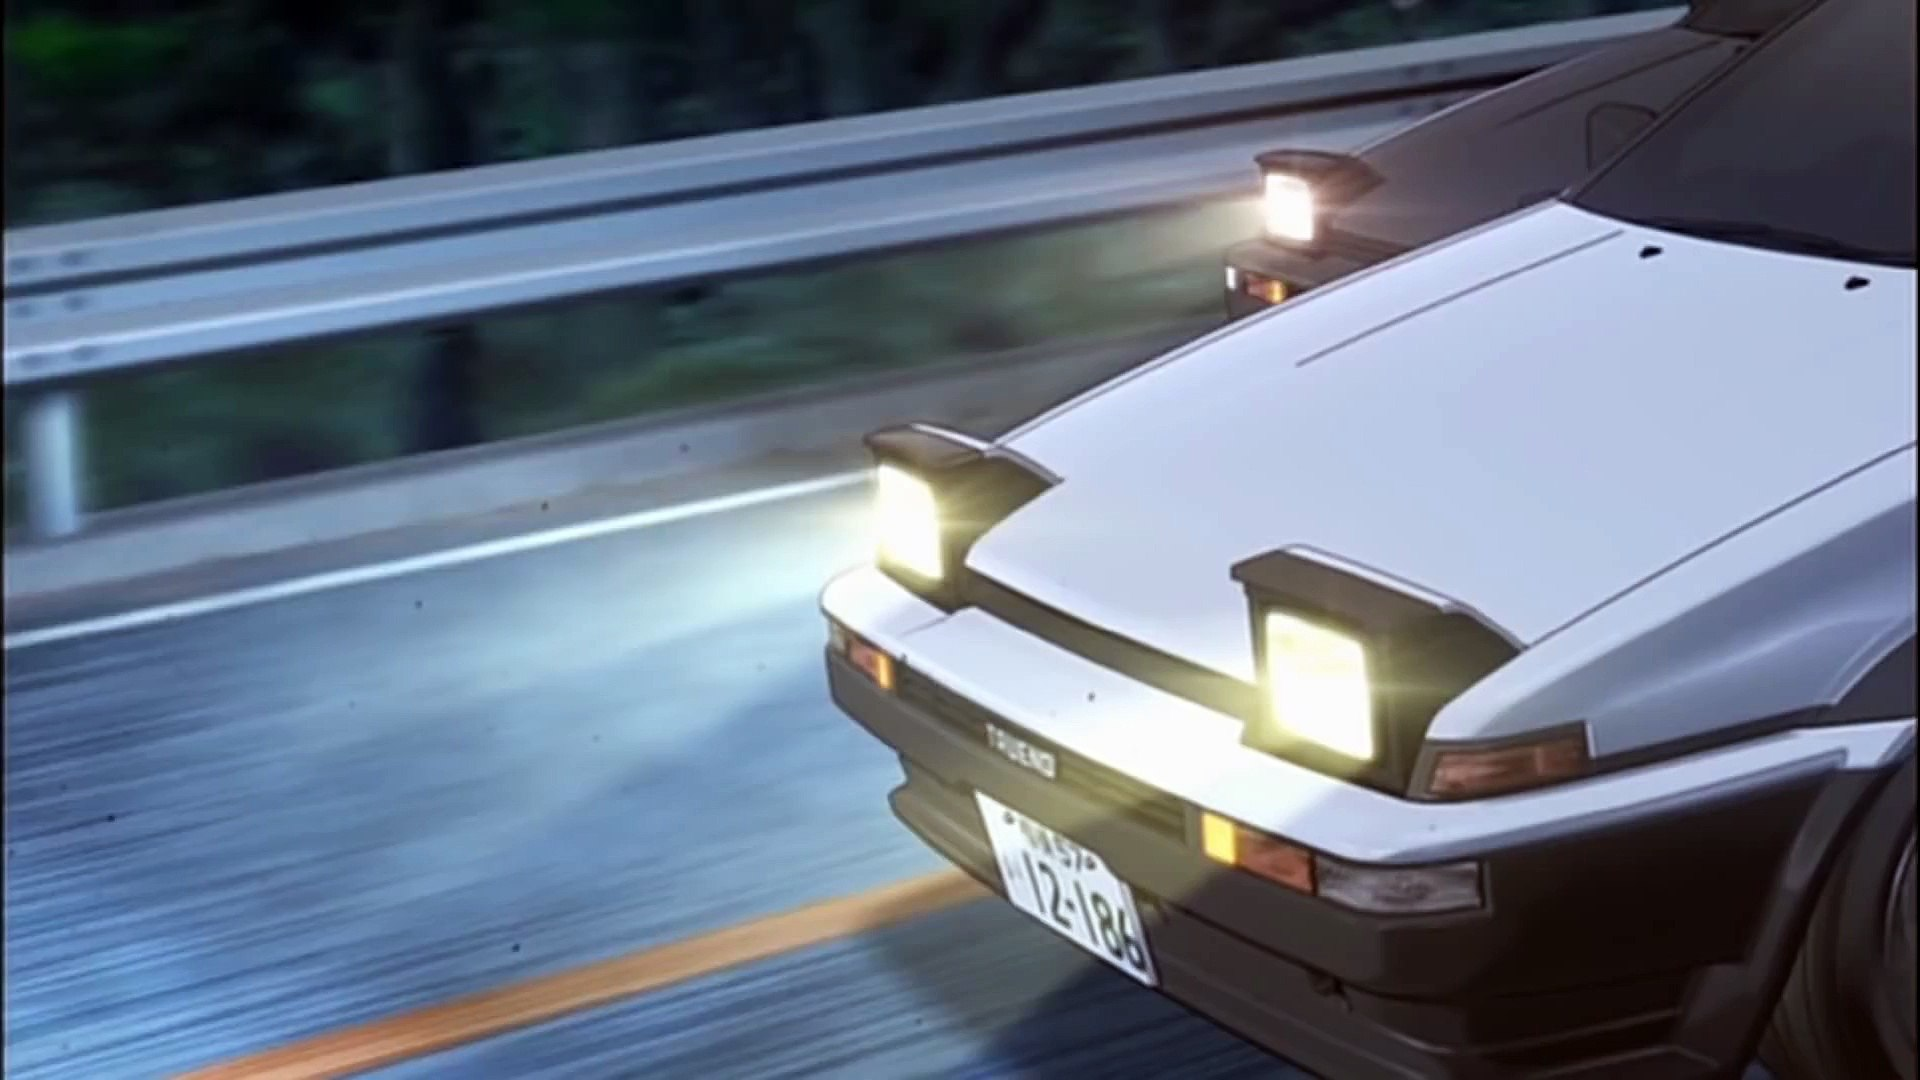 Initial-D Final Stage HD - Wings - AE86 Battle Hatch vs Coupe